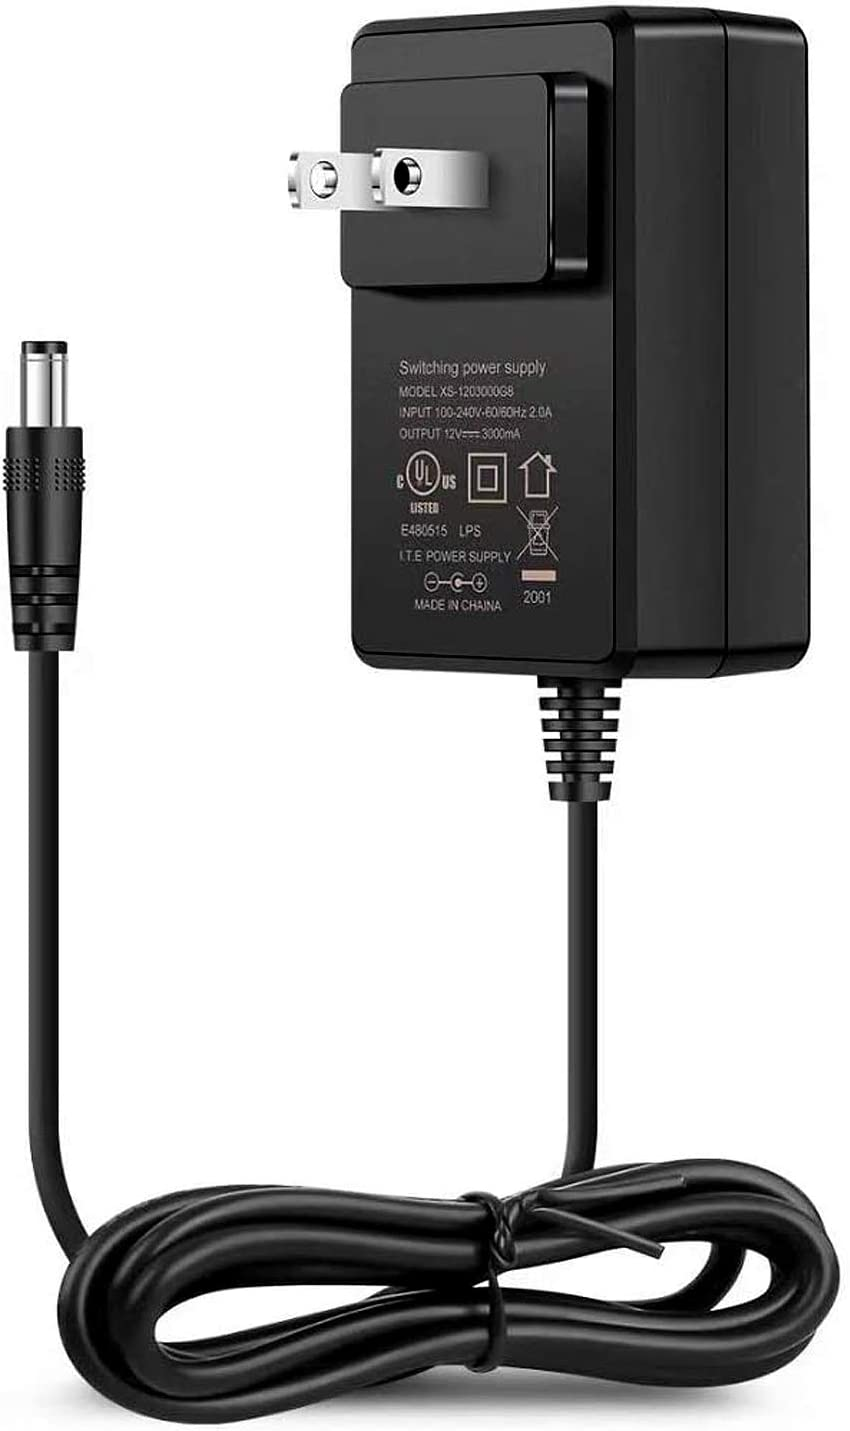 Amazon Com Joylit Ac 100 240v 50 60hz To Dc 12v 3a 36w Power Supply Adapter Ul Listed 12 Volt 3amp Transformer 2 1x5 5mm Center Positive 5ft Cord Us Plug Wall Charger Adaptor For Led Strip